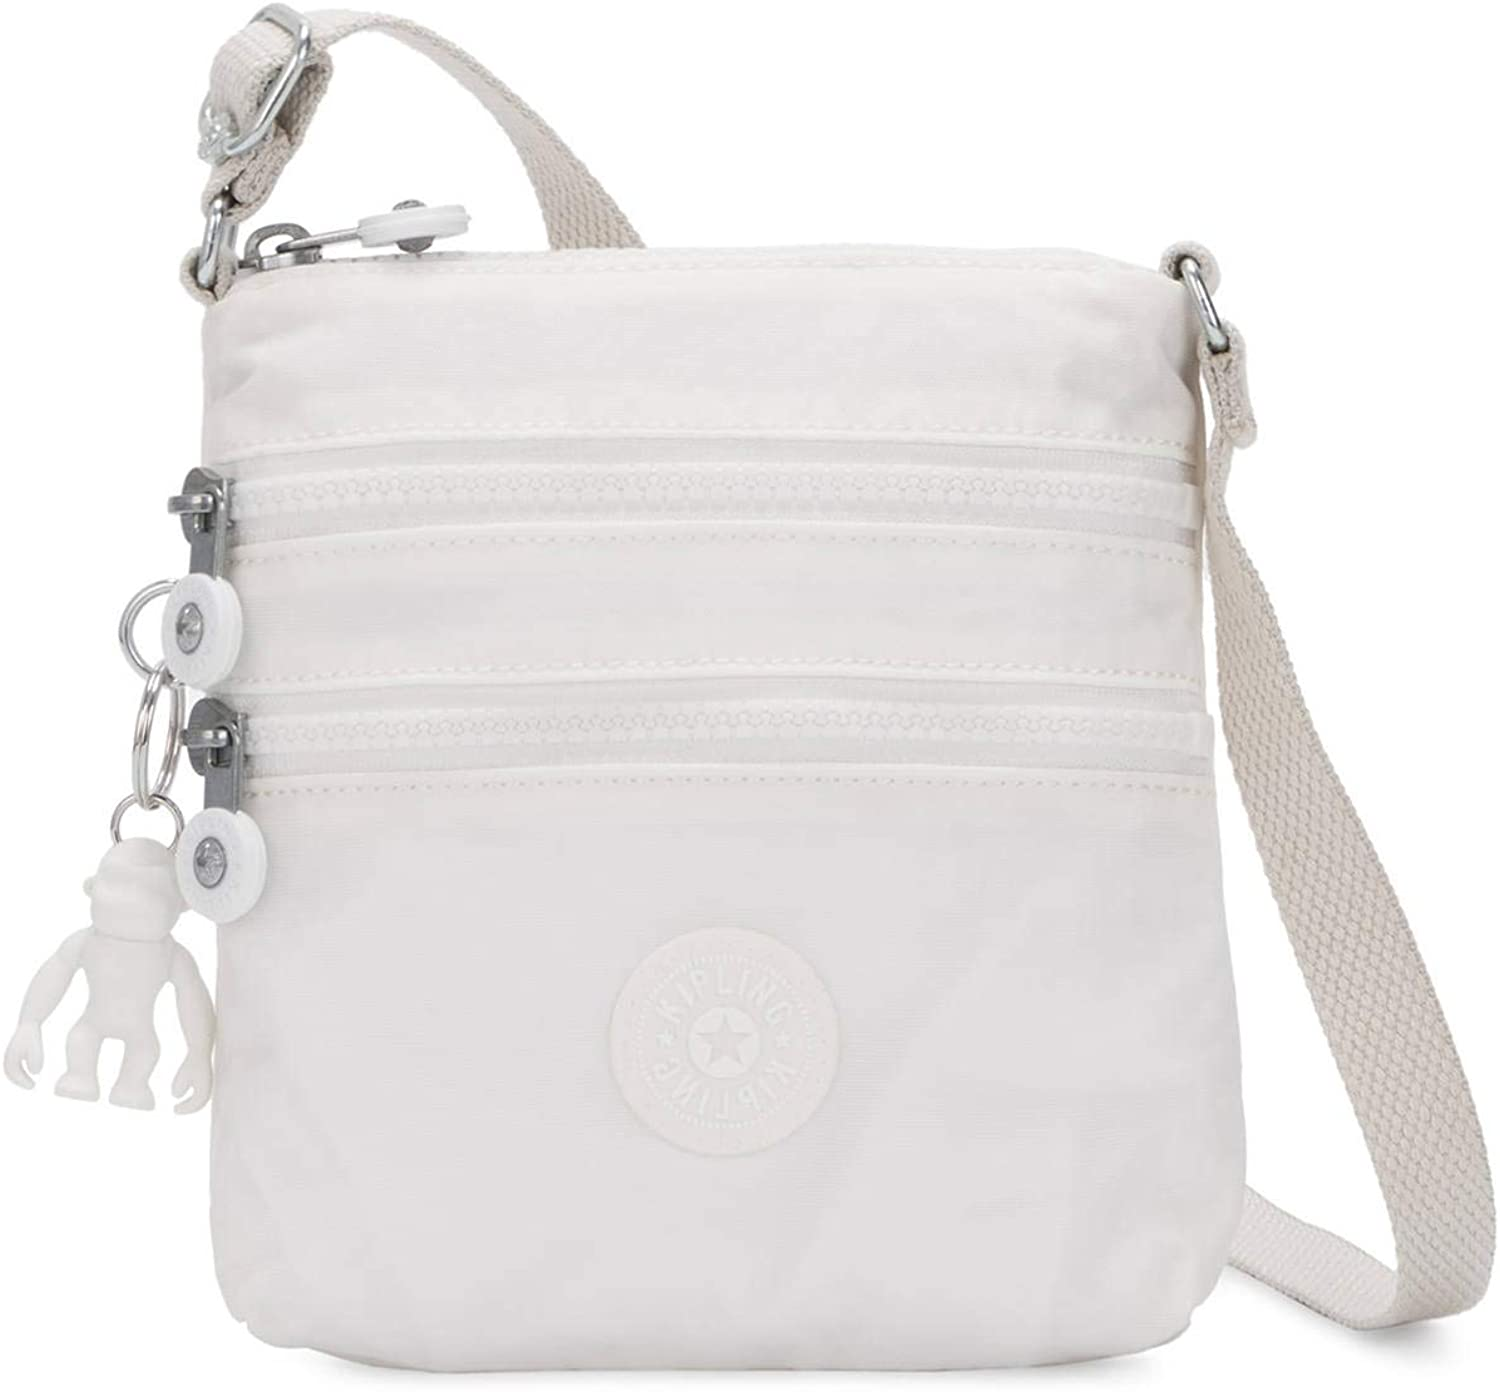 kipling alvar small crossbody bag